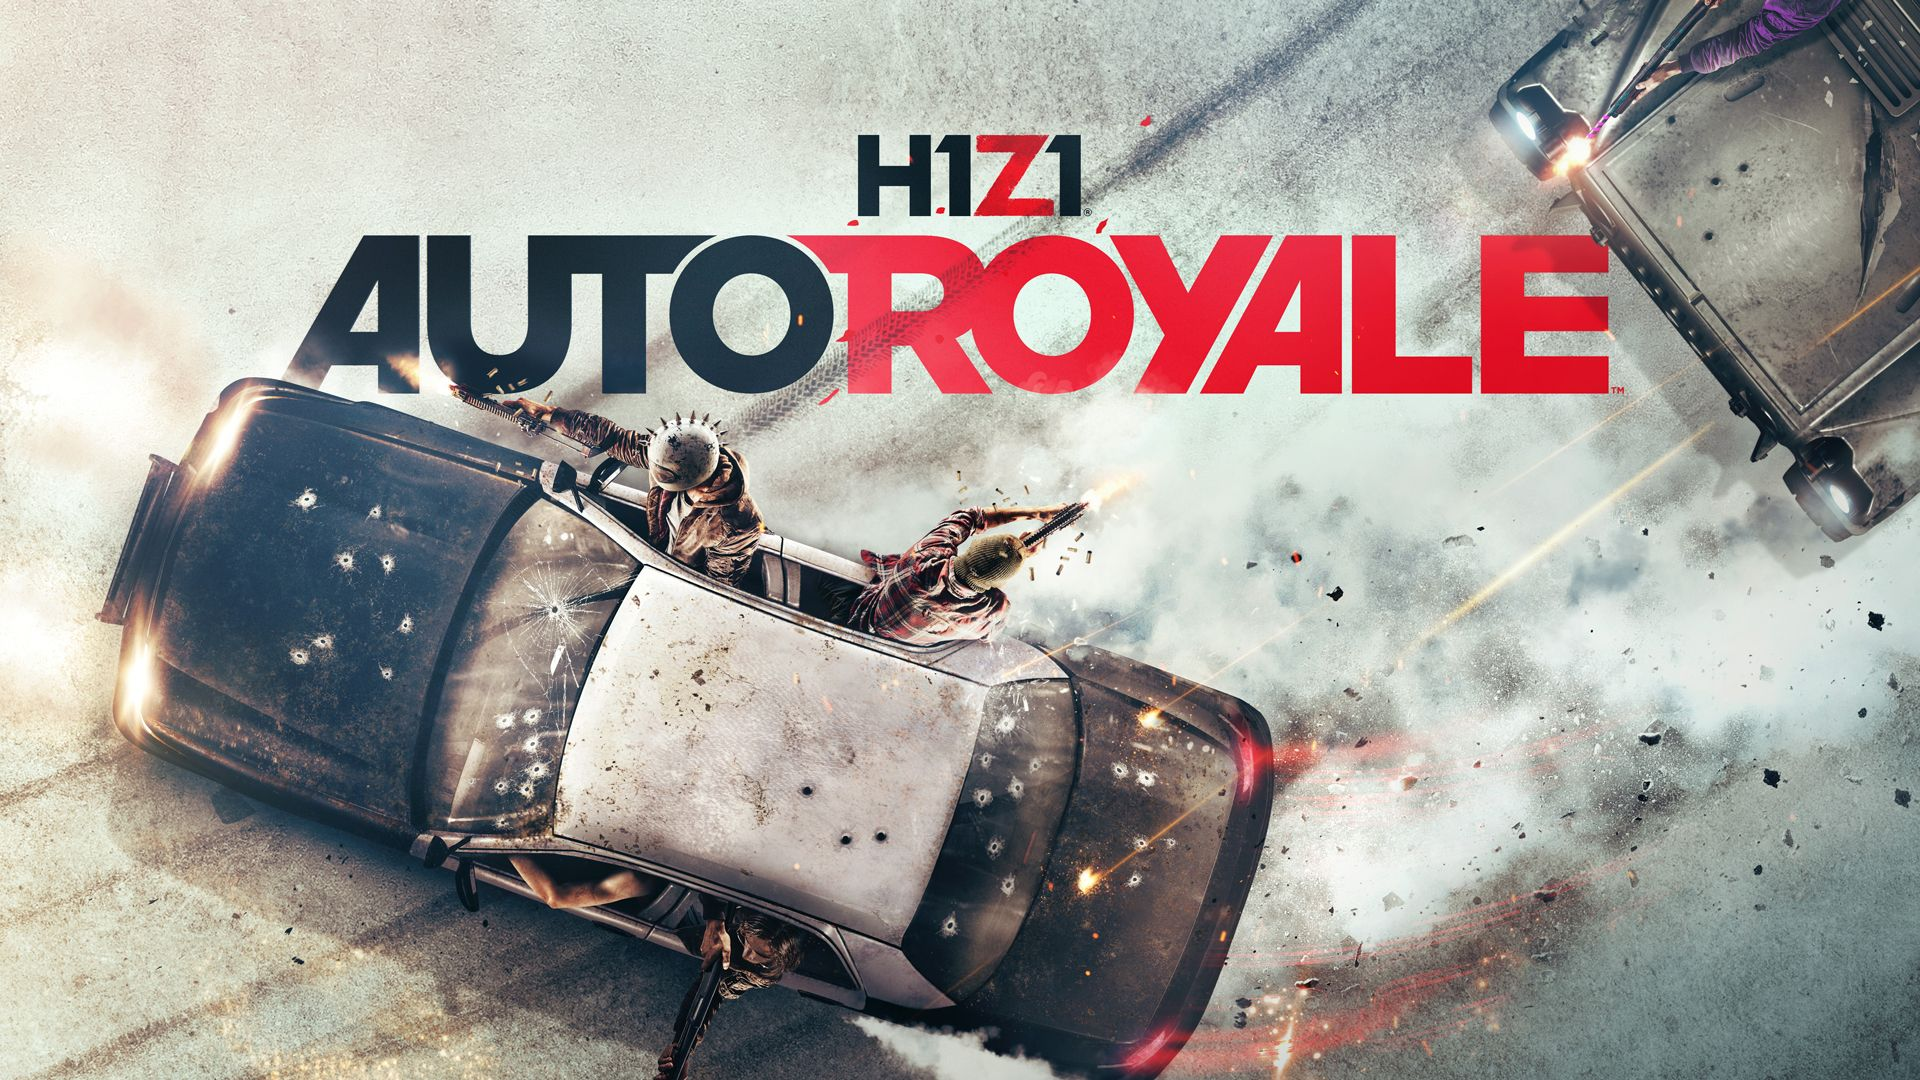 AutoRoyale 16x9 WEB KA 022218 1080 - H1Z1 lastly leaves Early Access with brand-new car fight royale mode